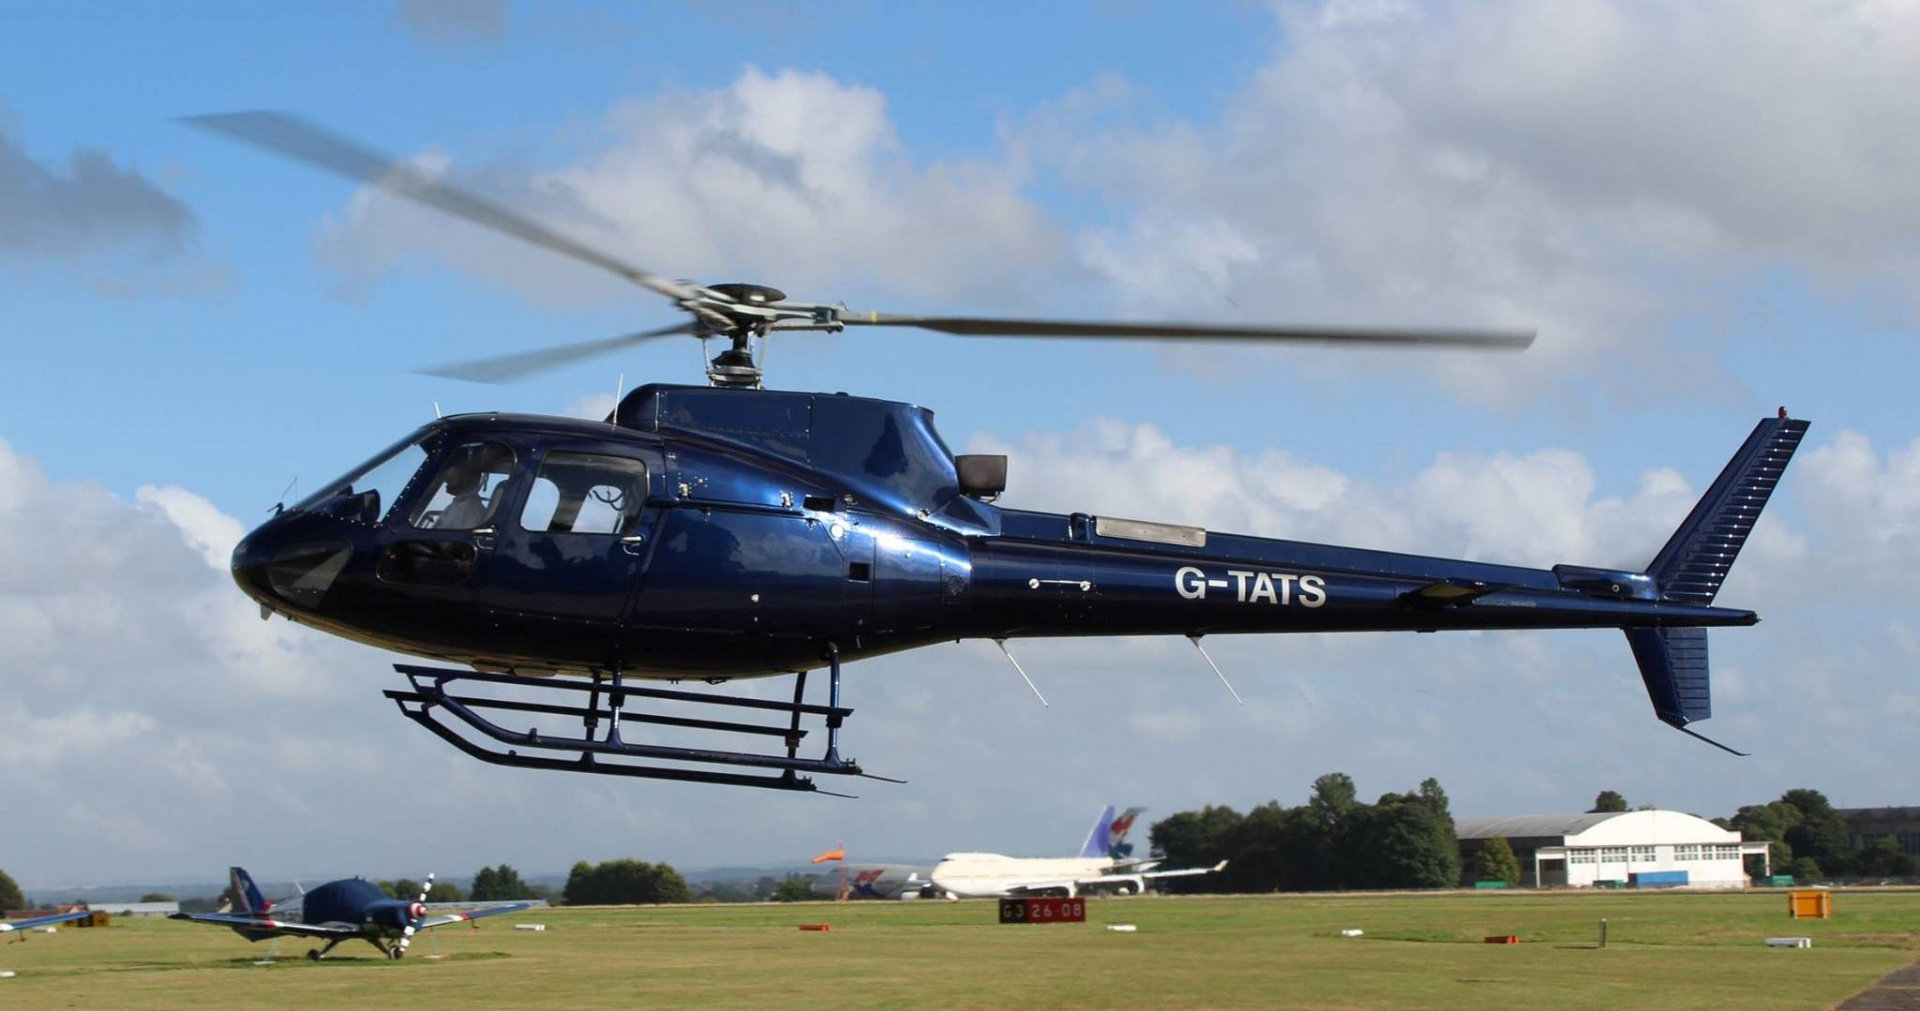 Bristol City Helicopter Sightseeing Tour